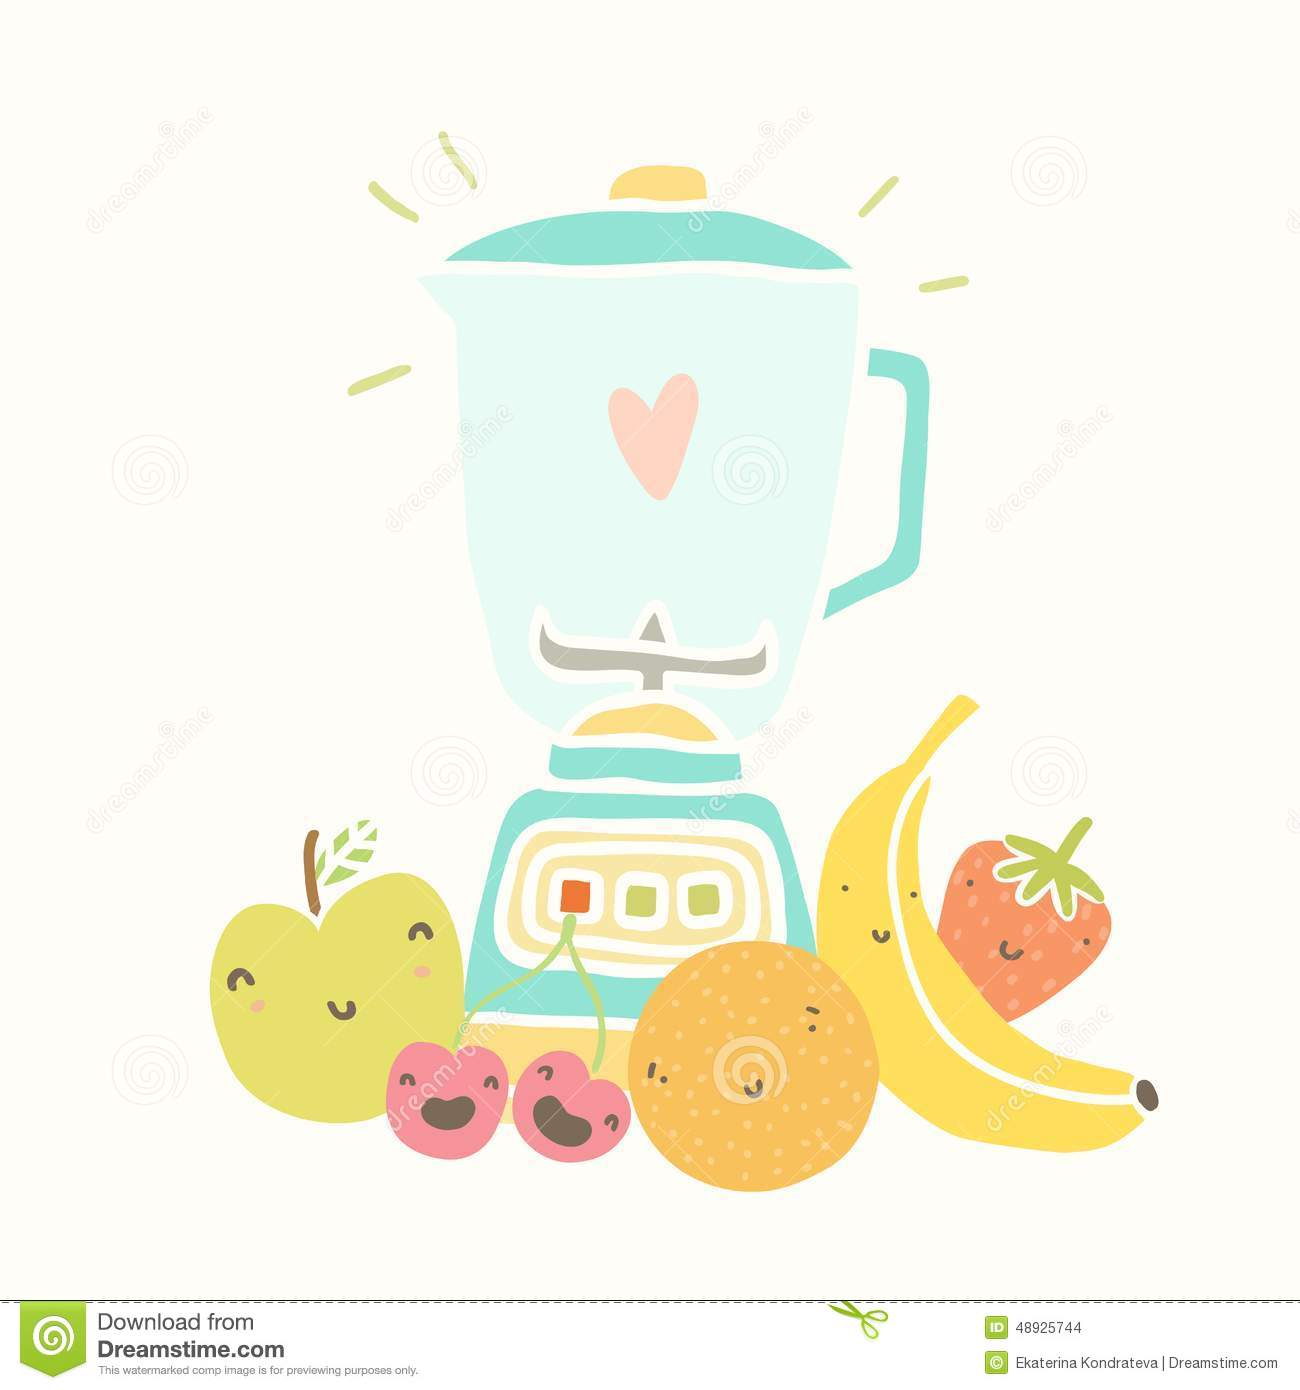 Blender clipart small appliance. Cute pencil and in